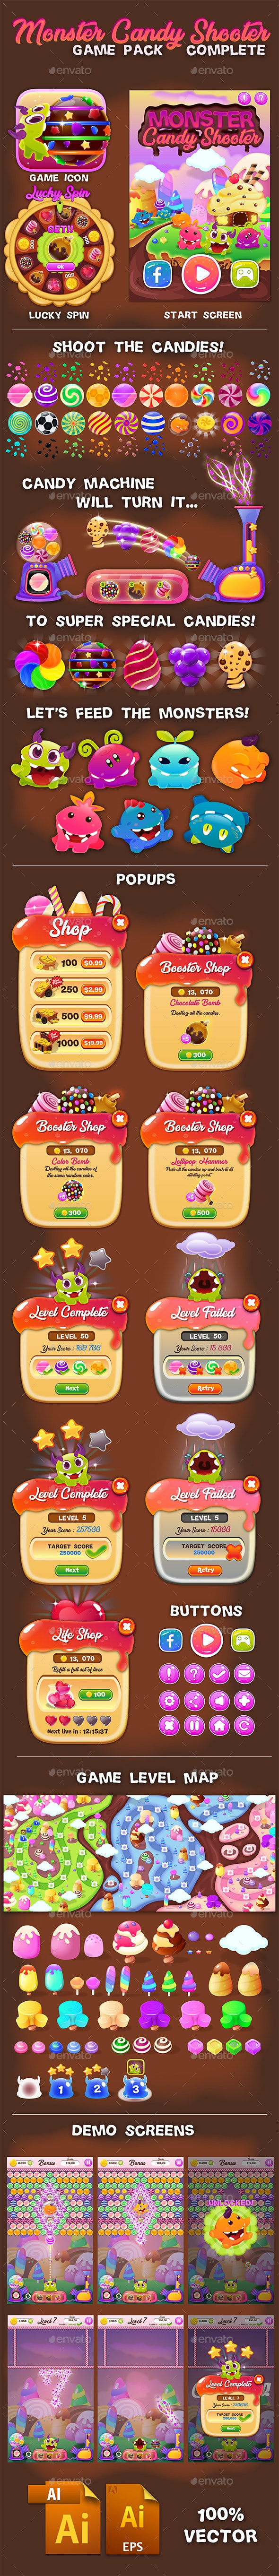 Monster Candy Shooter Game Pack Complete - Game Kits Game Assets